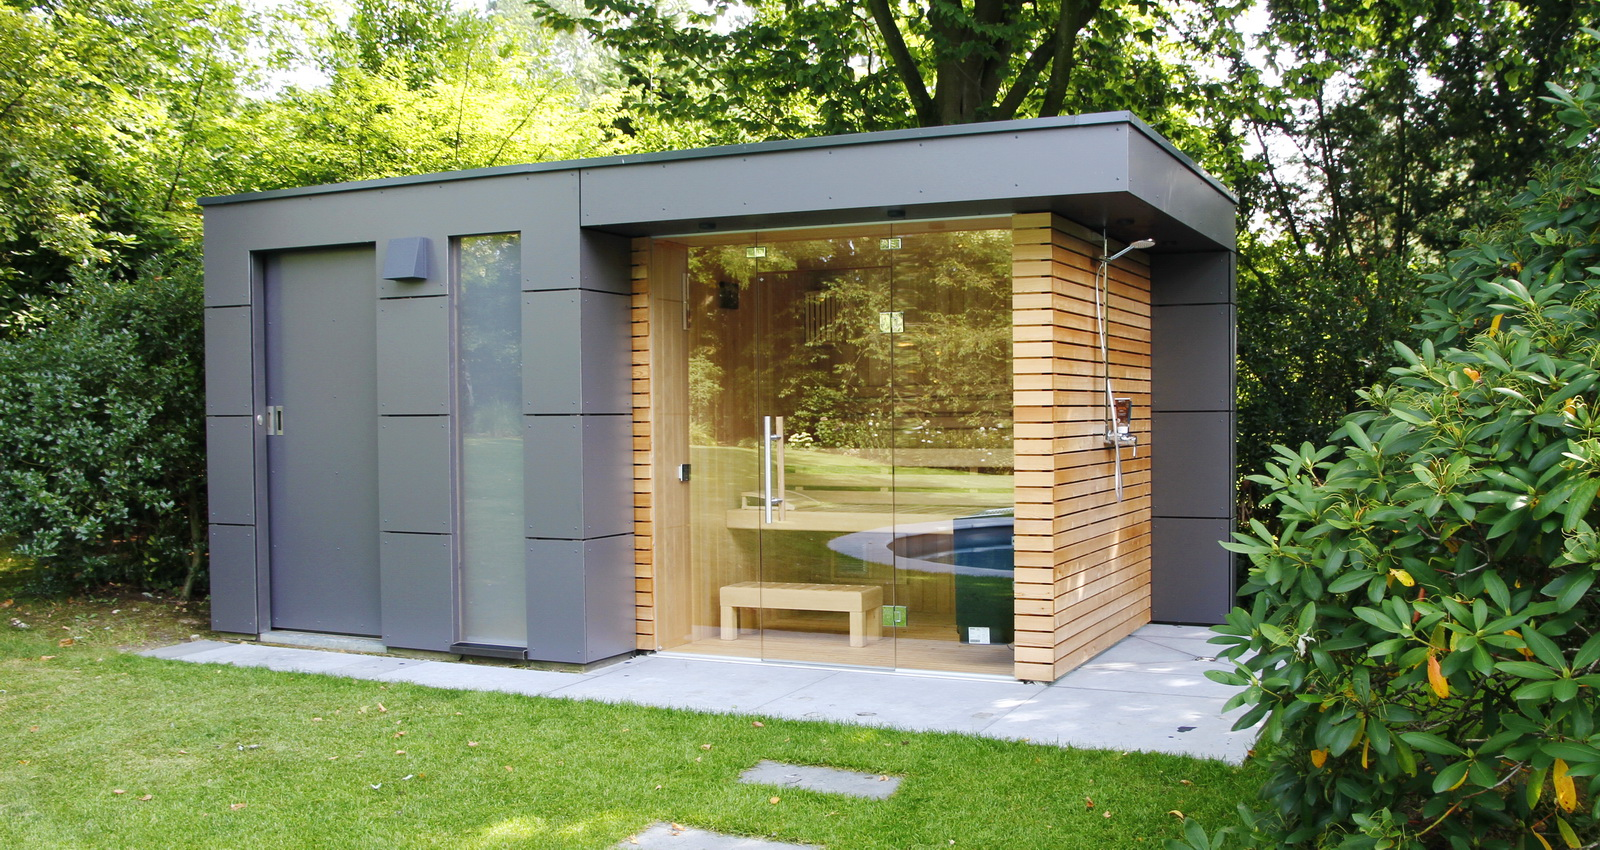 design gartenhaus moderne gartenh user schicke gartensauna auch alsbausatz. Black Bedroom Furniture Sets. Home Design Ideas